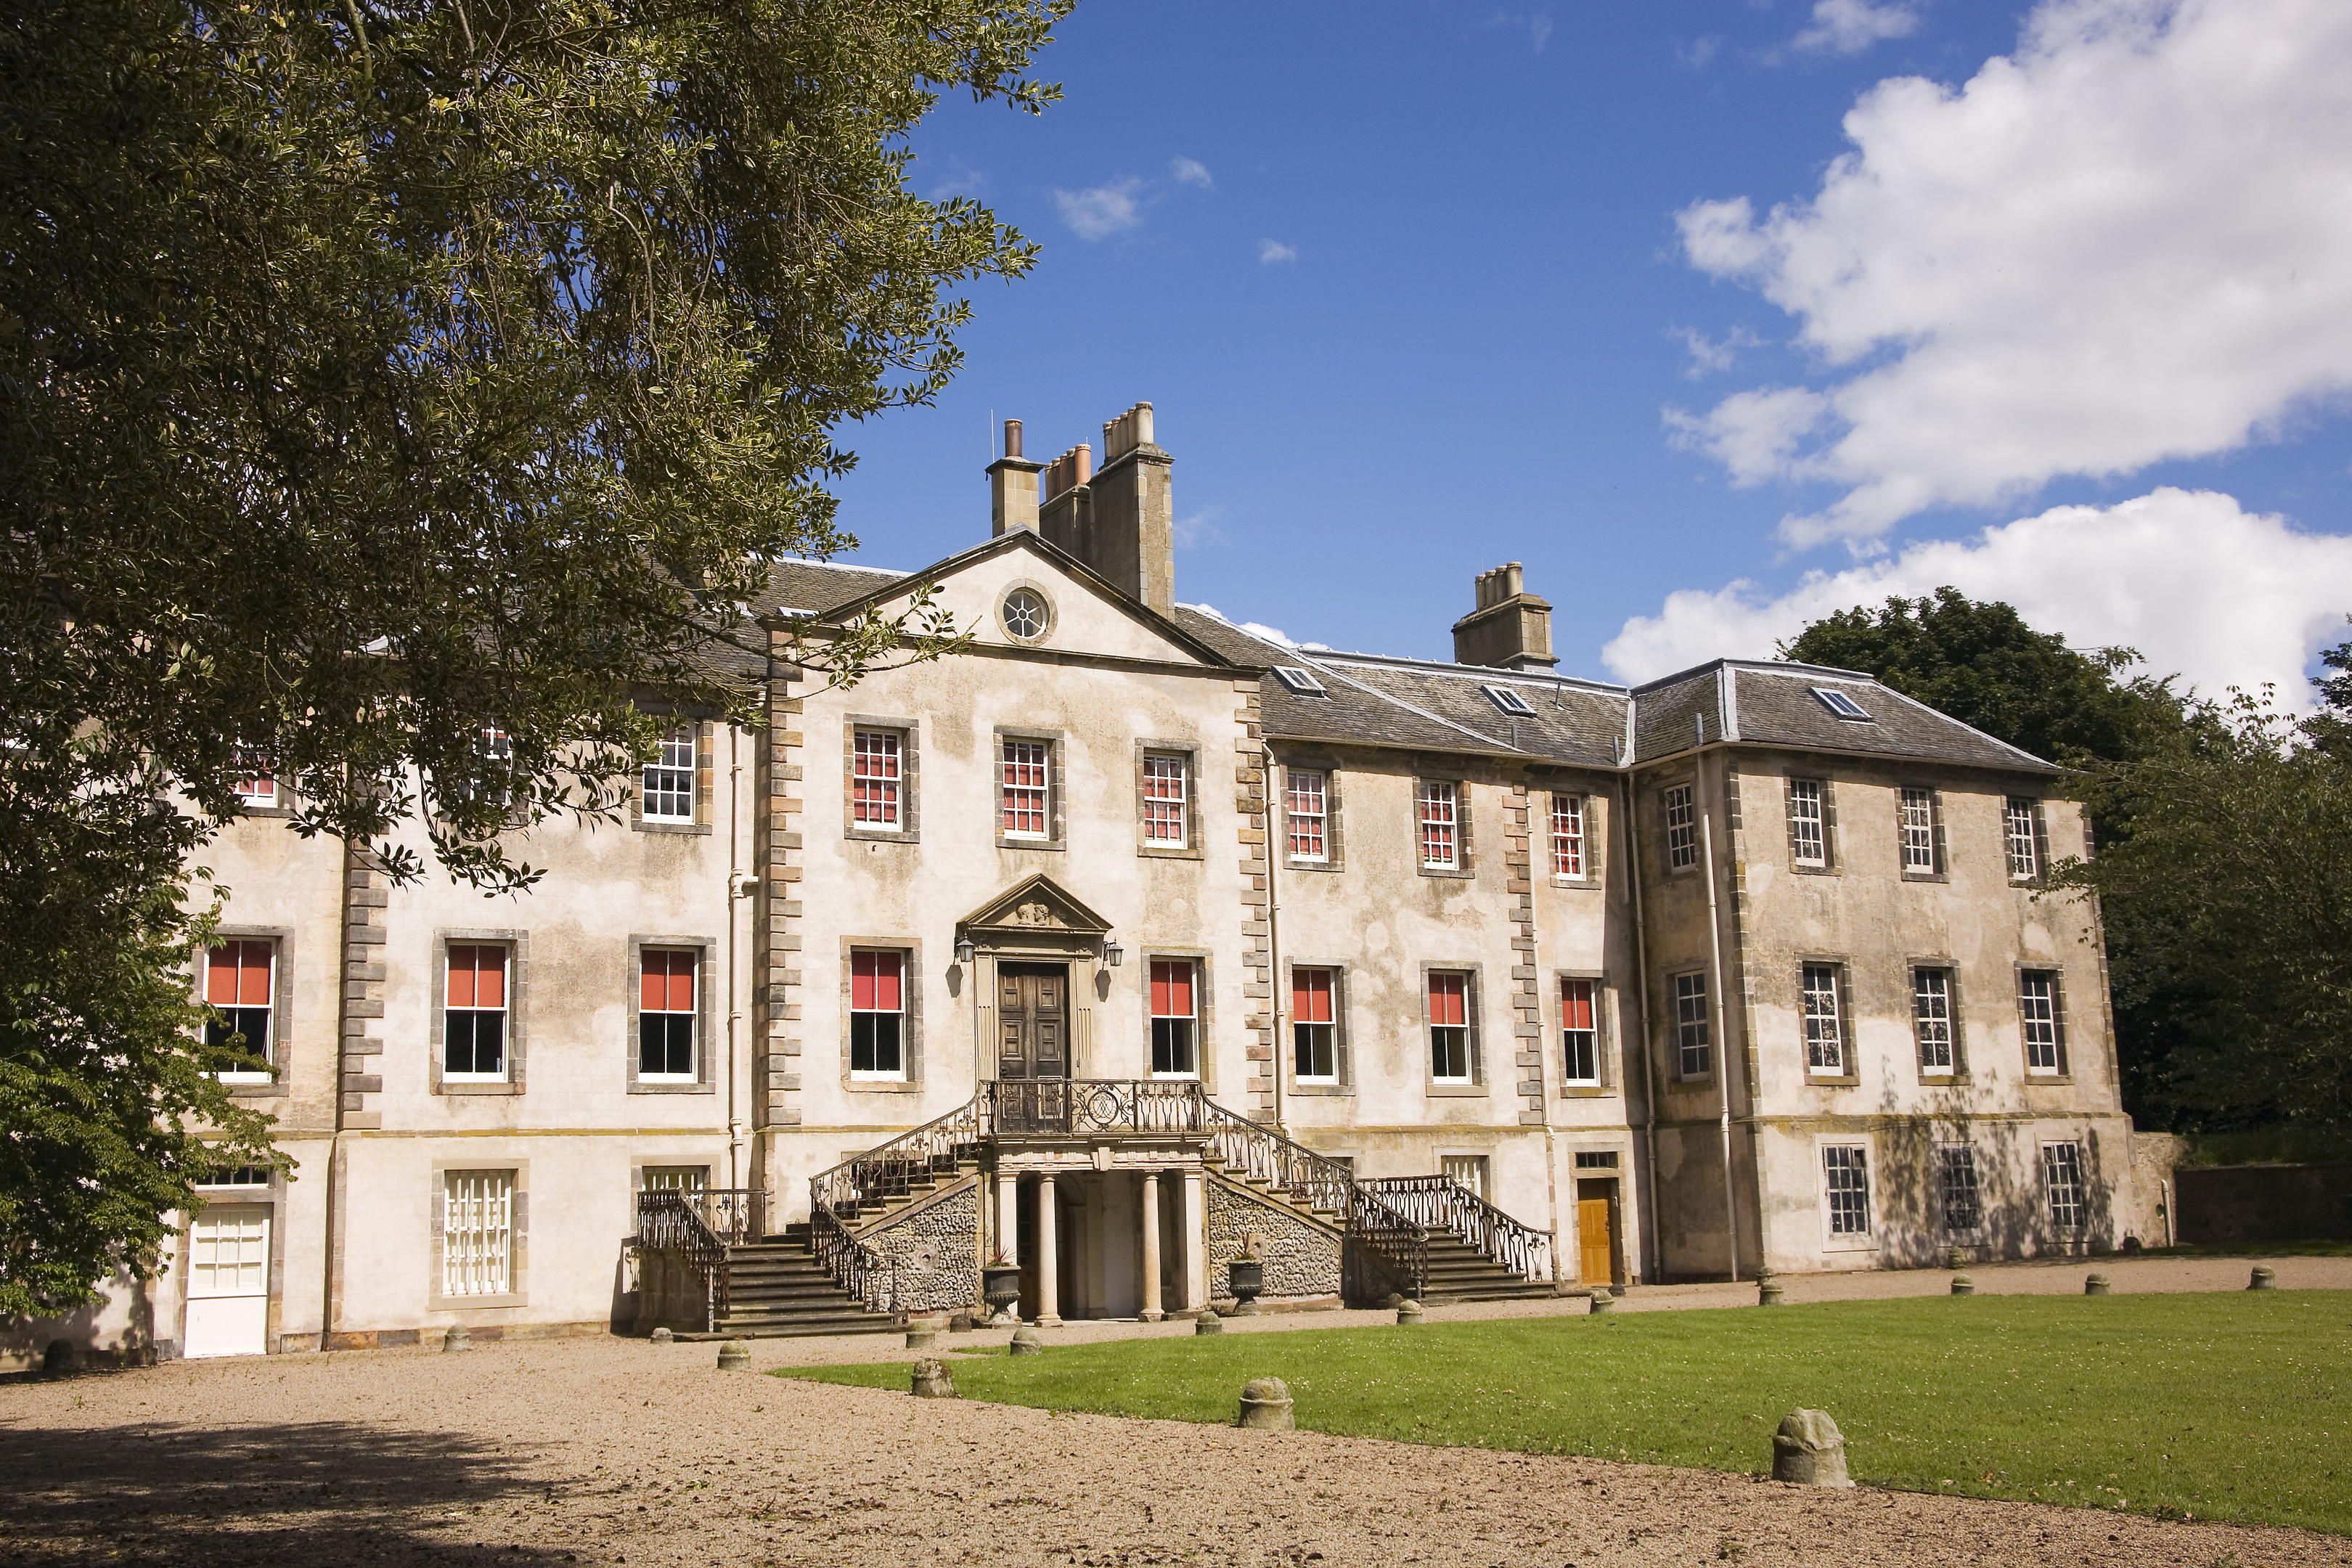 The National Trust for Scotland is investing in its properties, such as Newhailes House in Musselburgh.